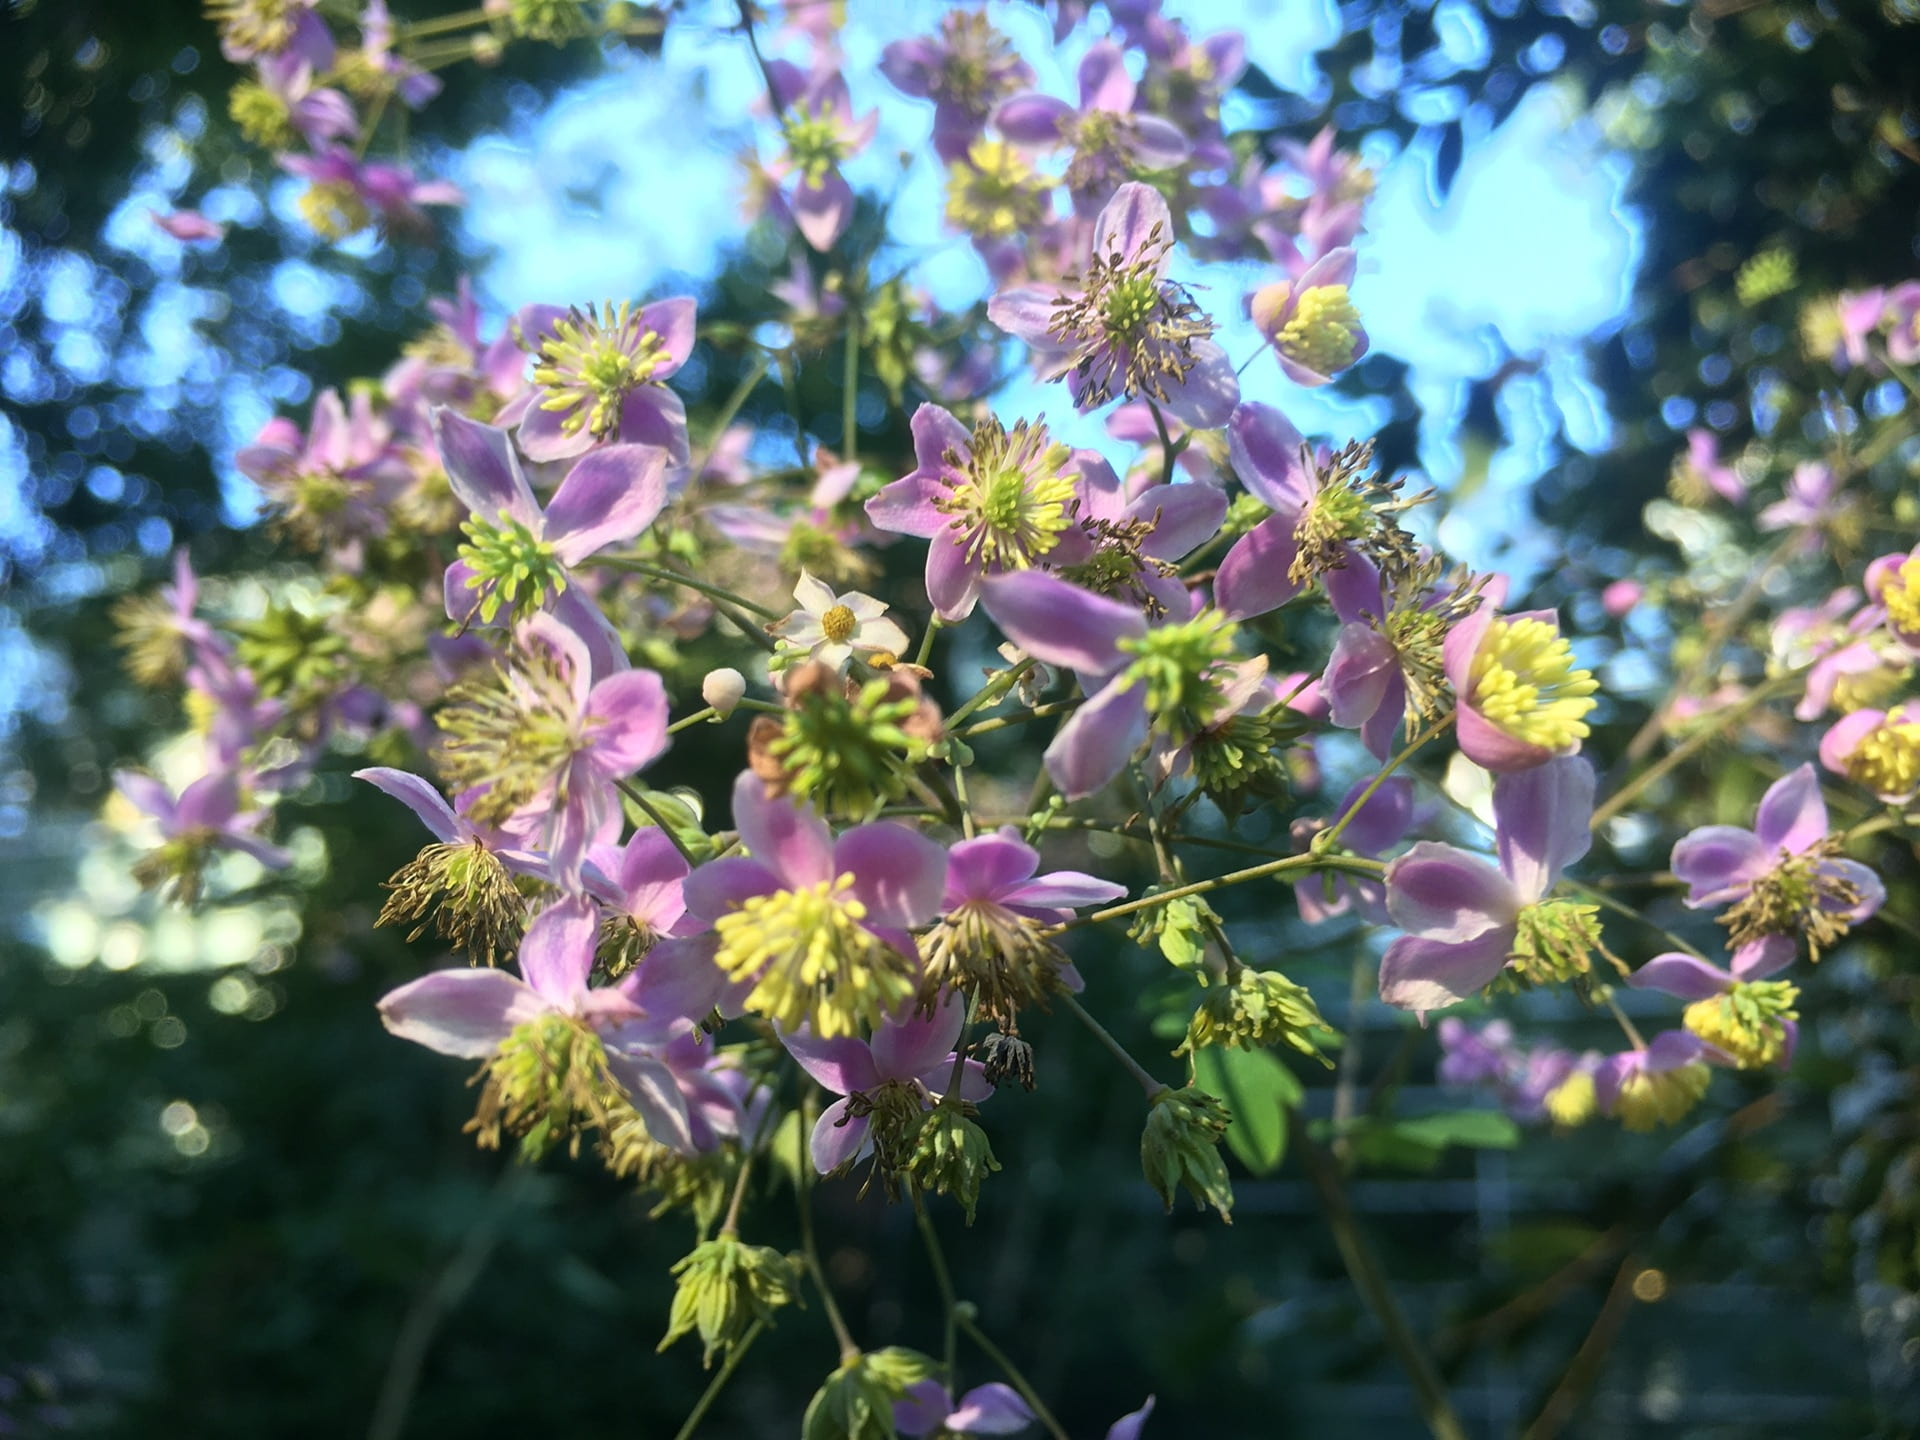 Thalictrum rochebruniatum flowers stand around six feet tall, allowing for an up close look.